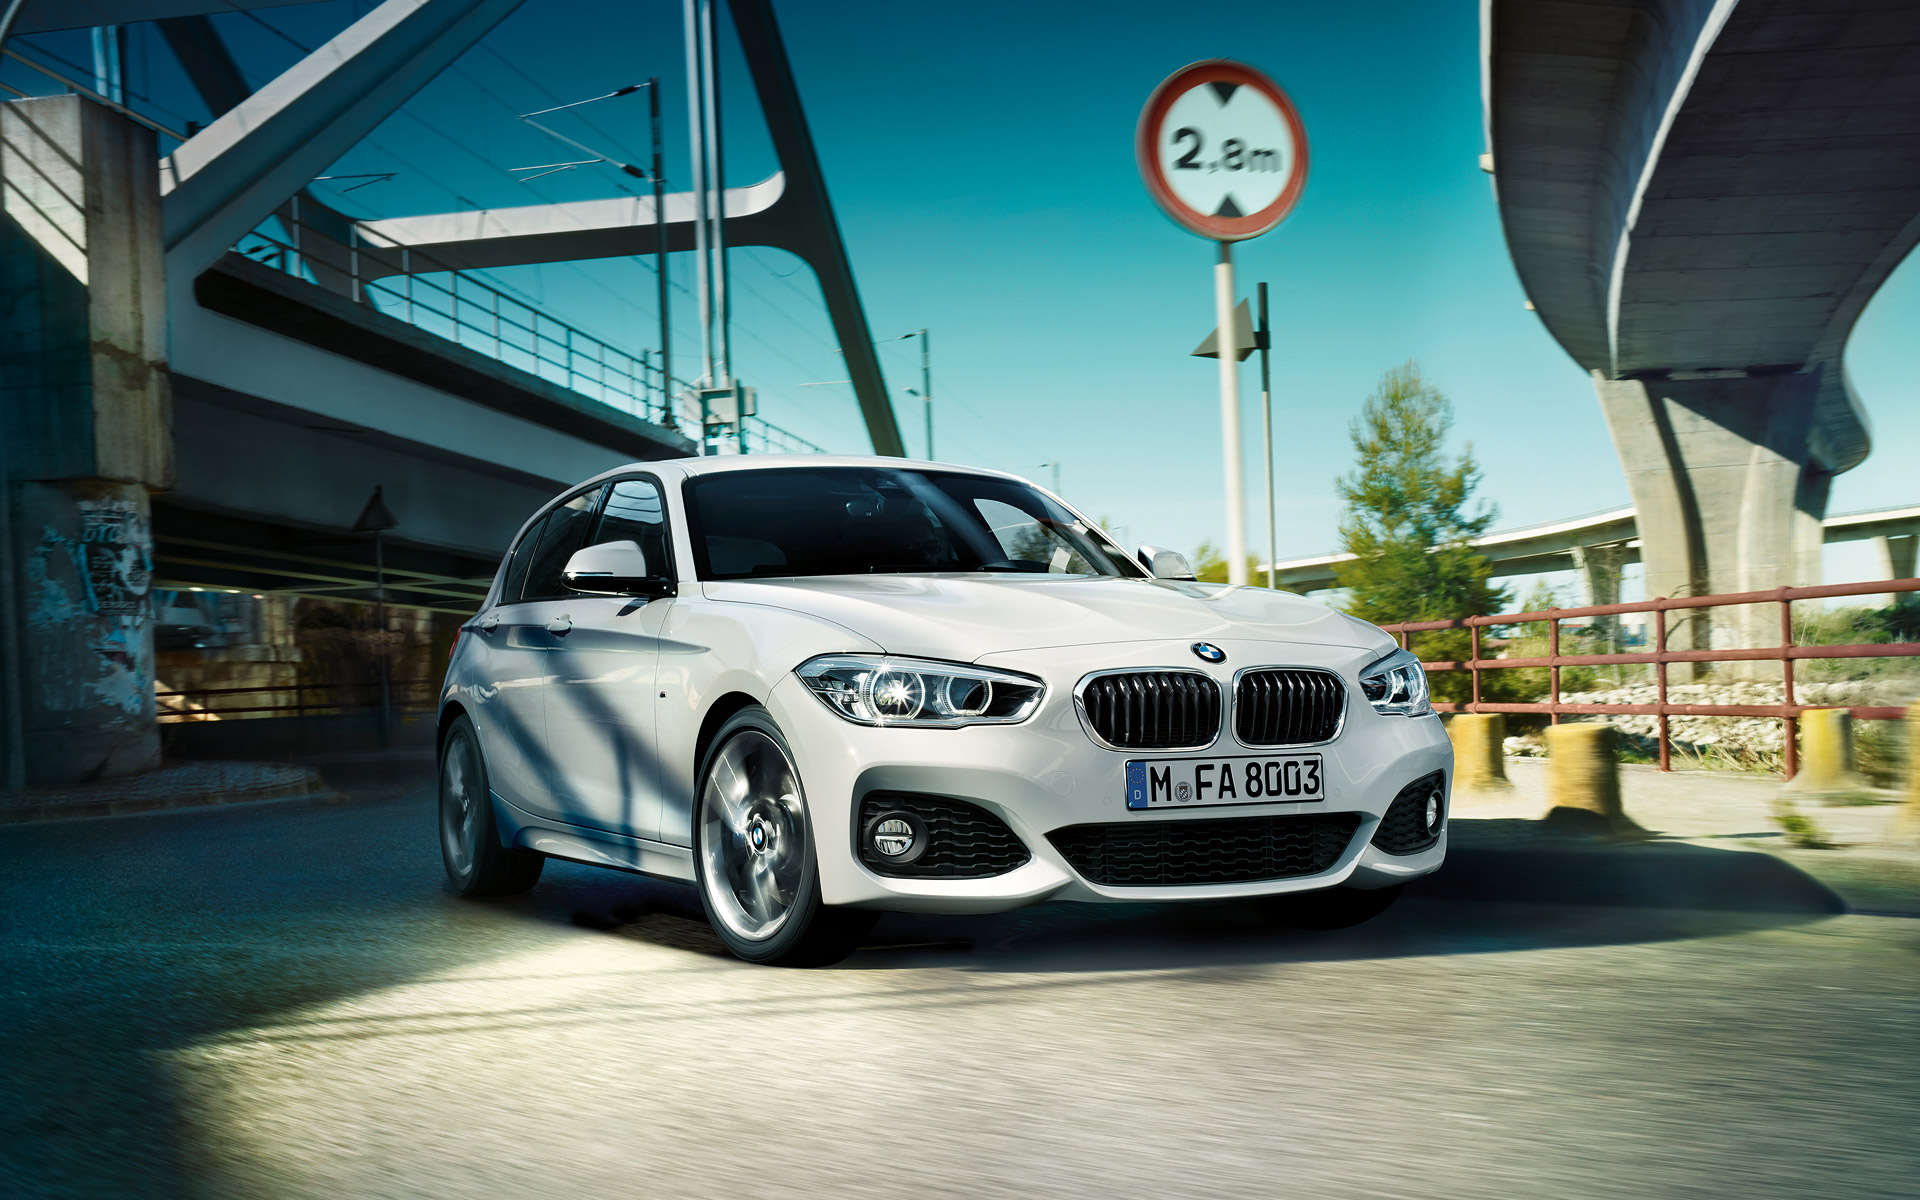 Bmw 1 Series HD Wallpaper